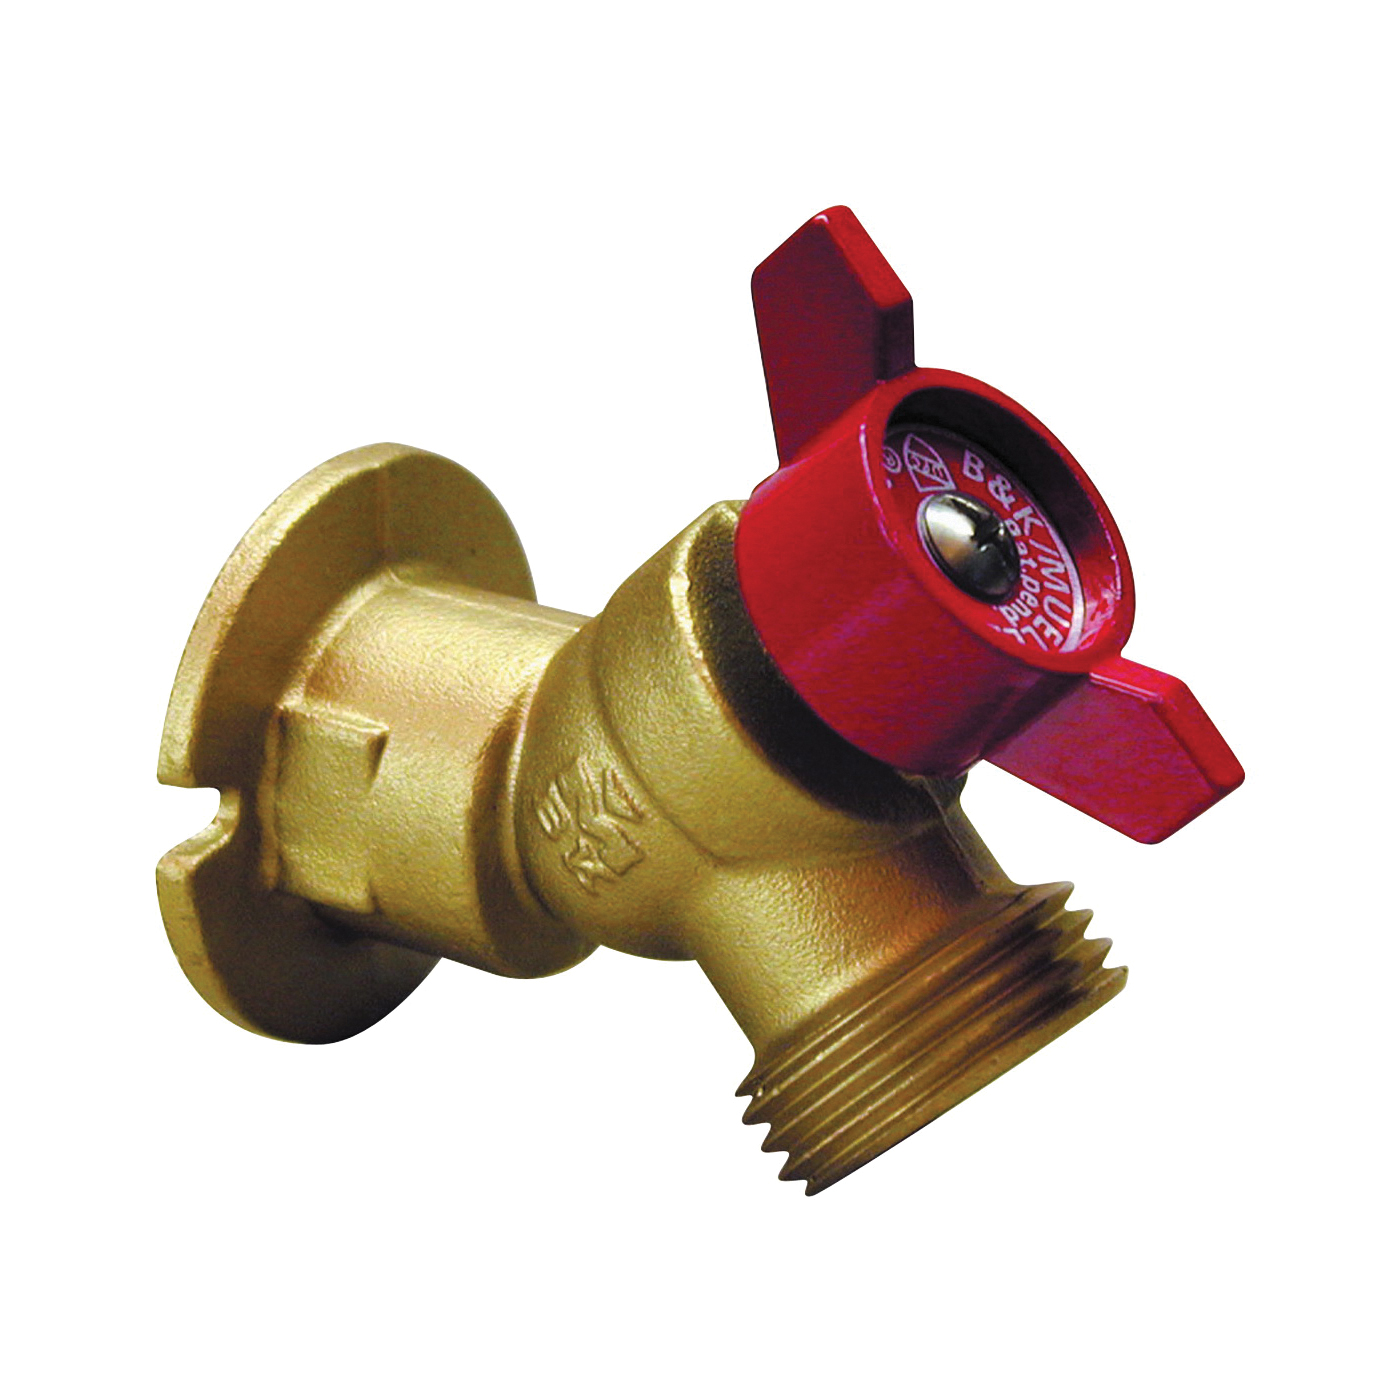 Picture of B & K 108-054HN Sillcock Valve, 3/4 x 3/4 in Connection, FPT x Male Hose, 125 psi Pressure, Brass Body